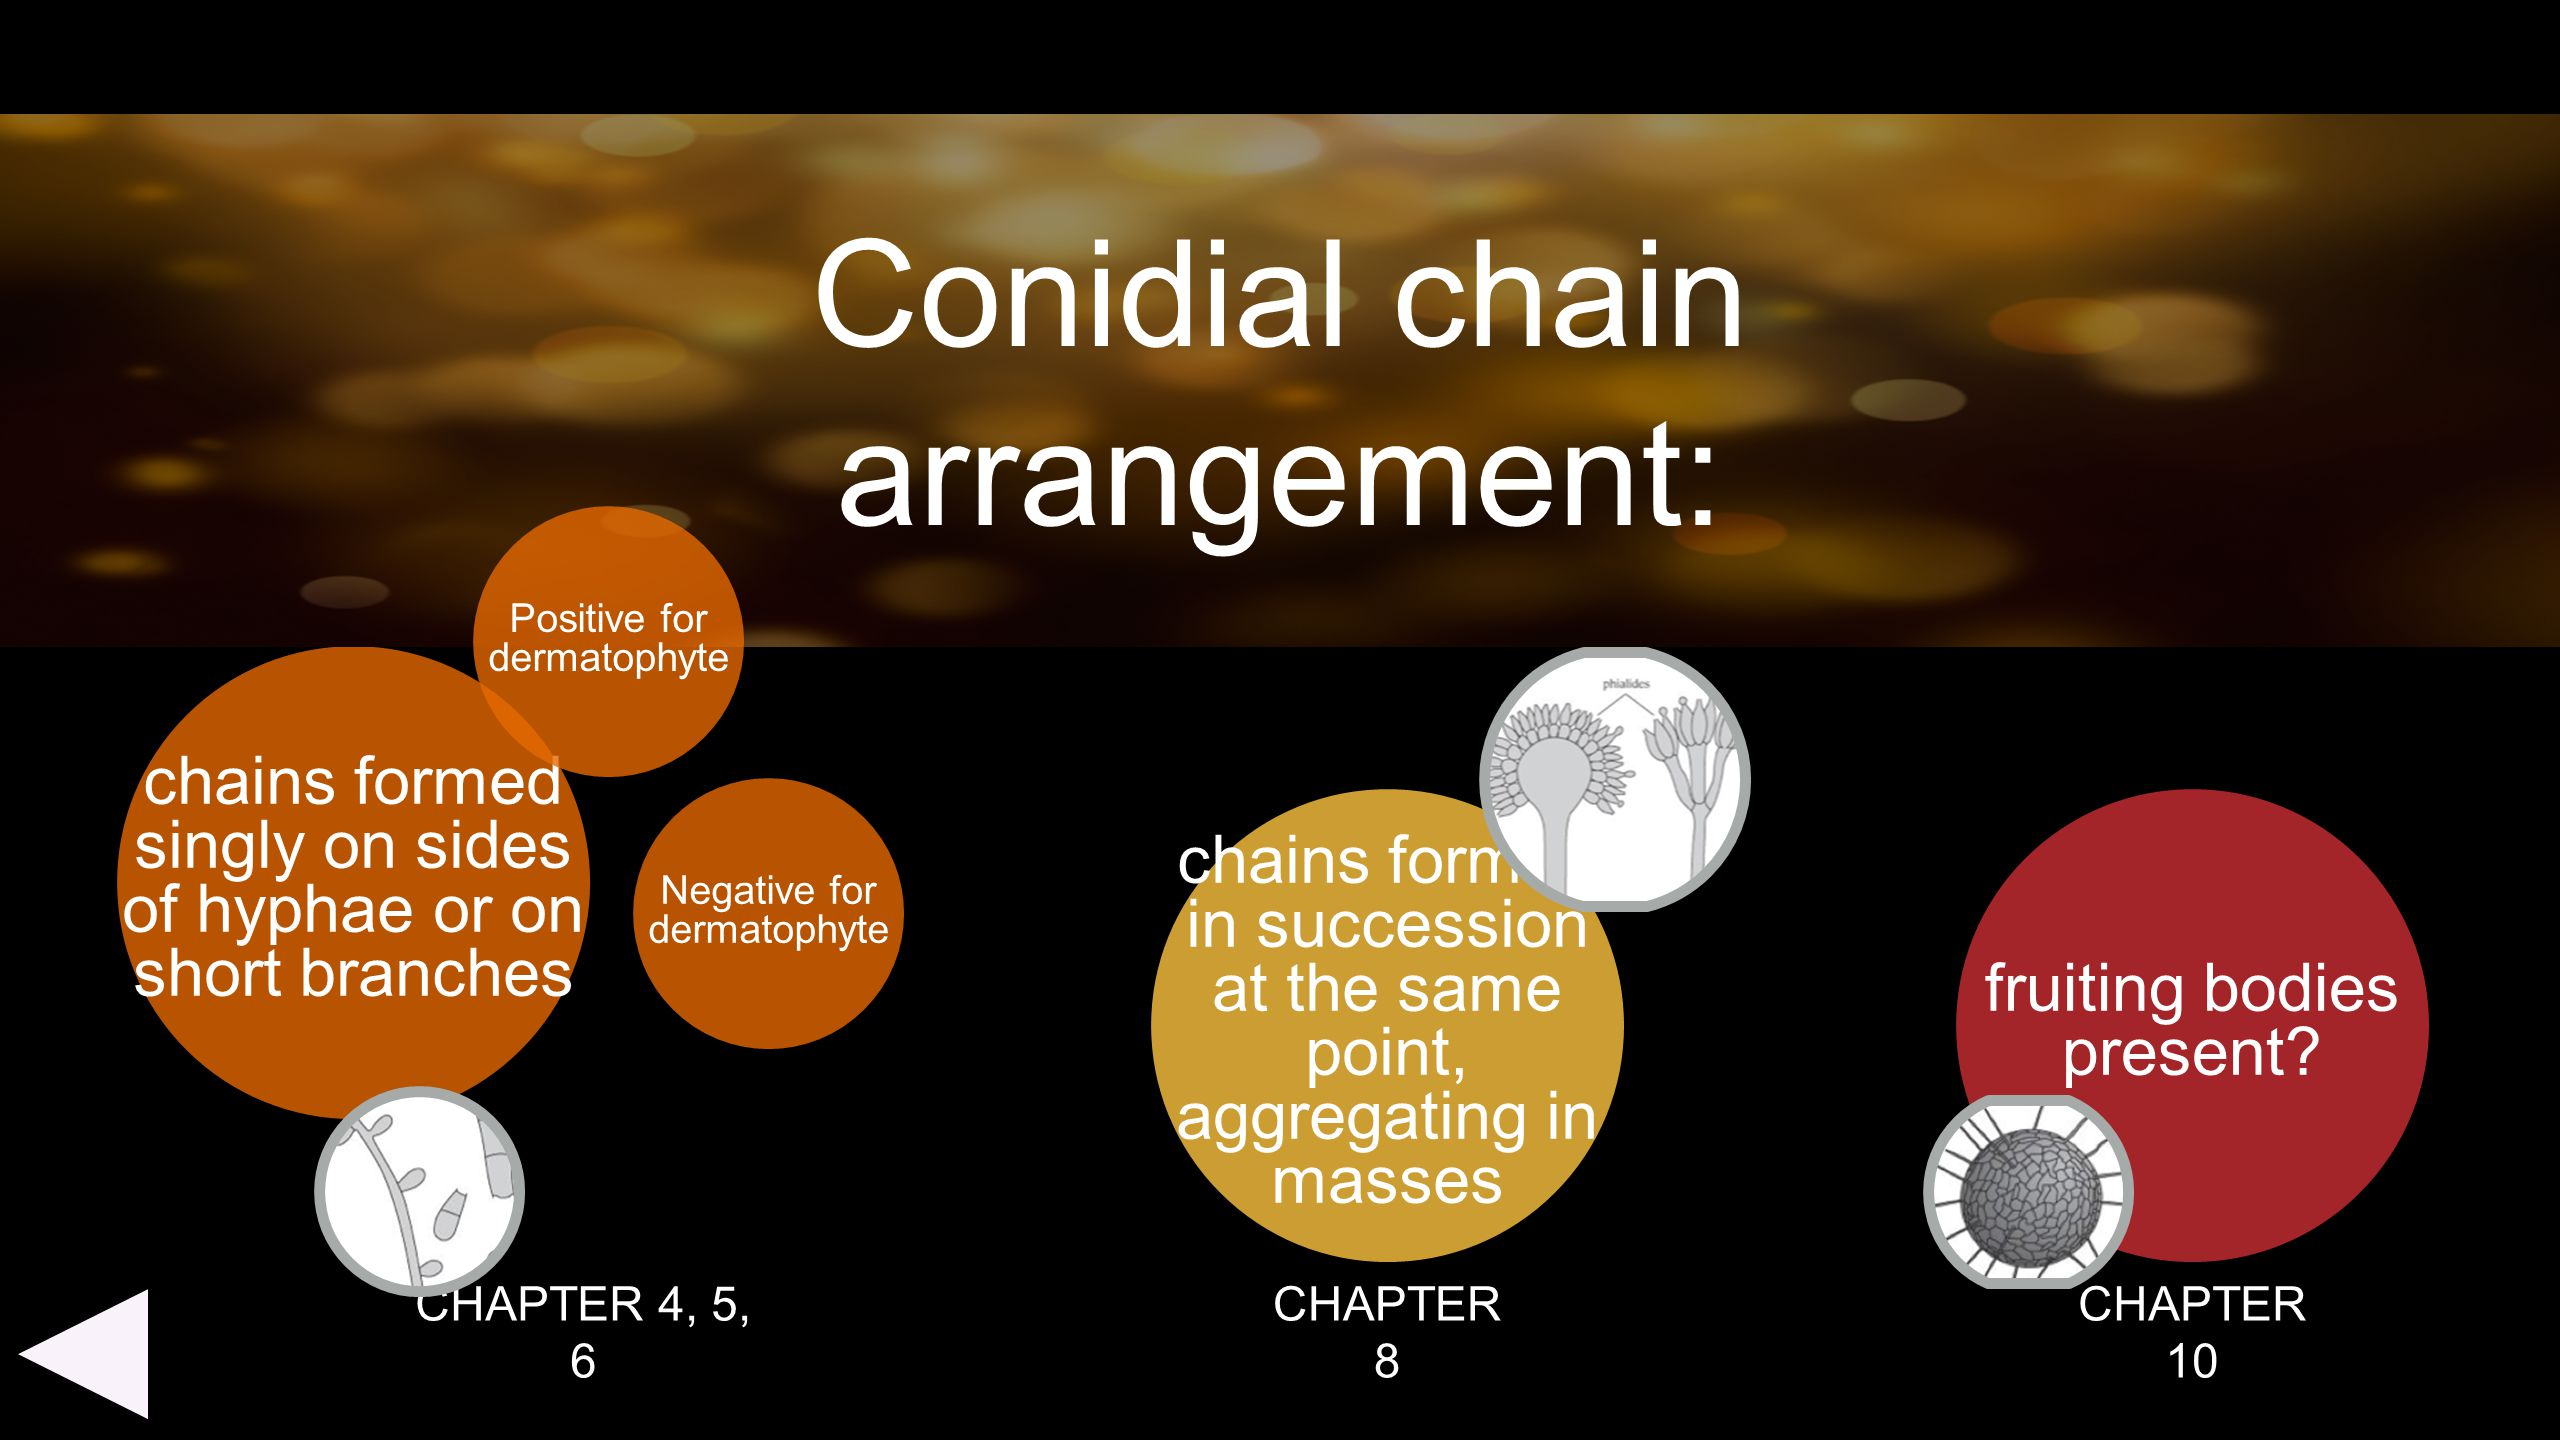 Conidial chain arrangement: